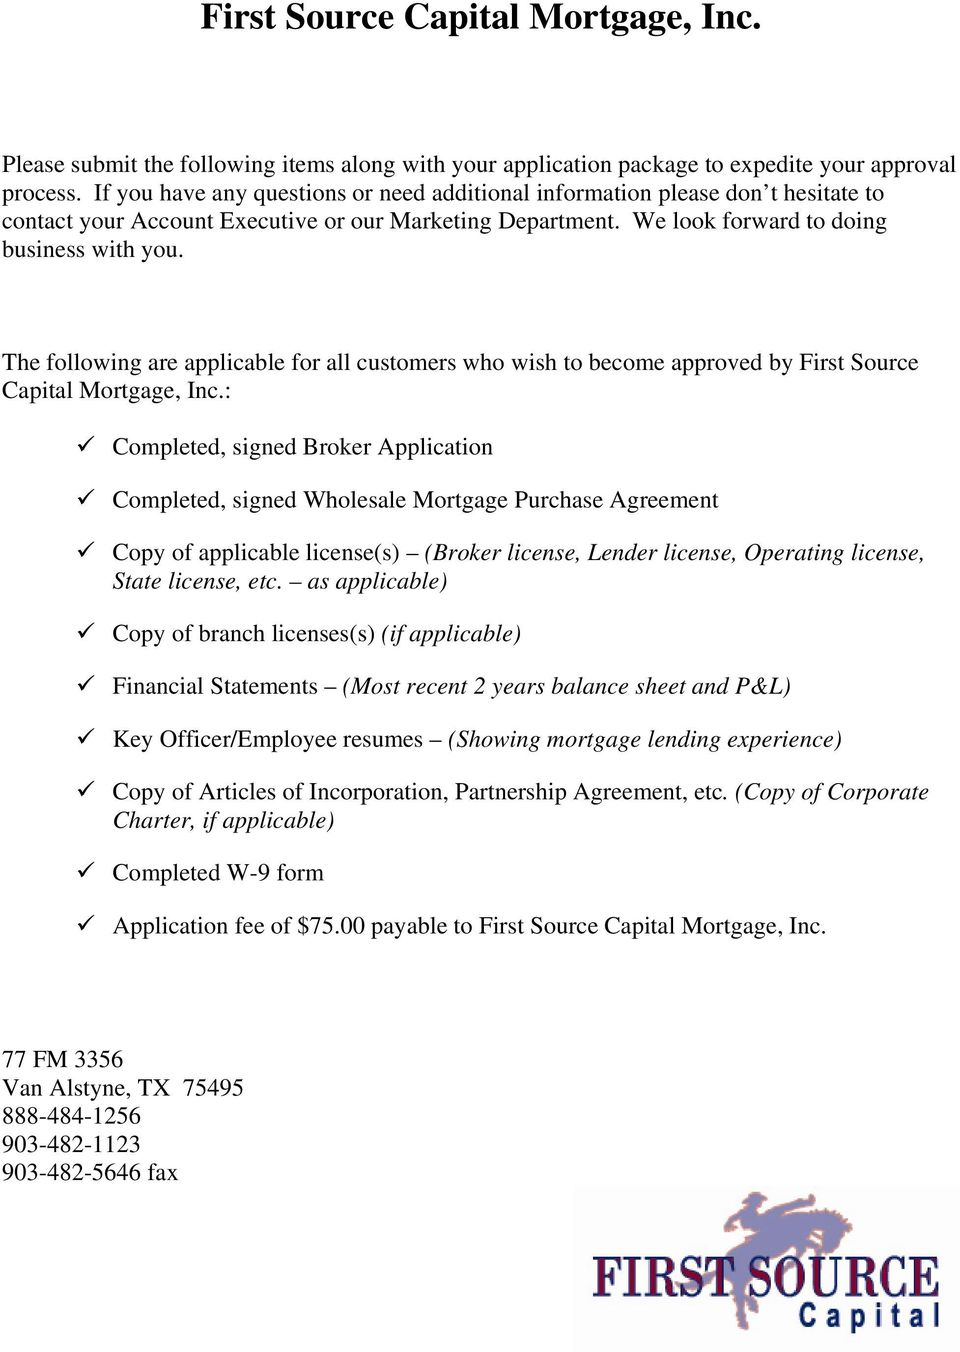 The following are applicable for all customers who wish to become approved by First Source Capital Mortgage, Inc.